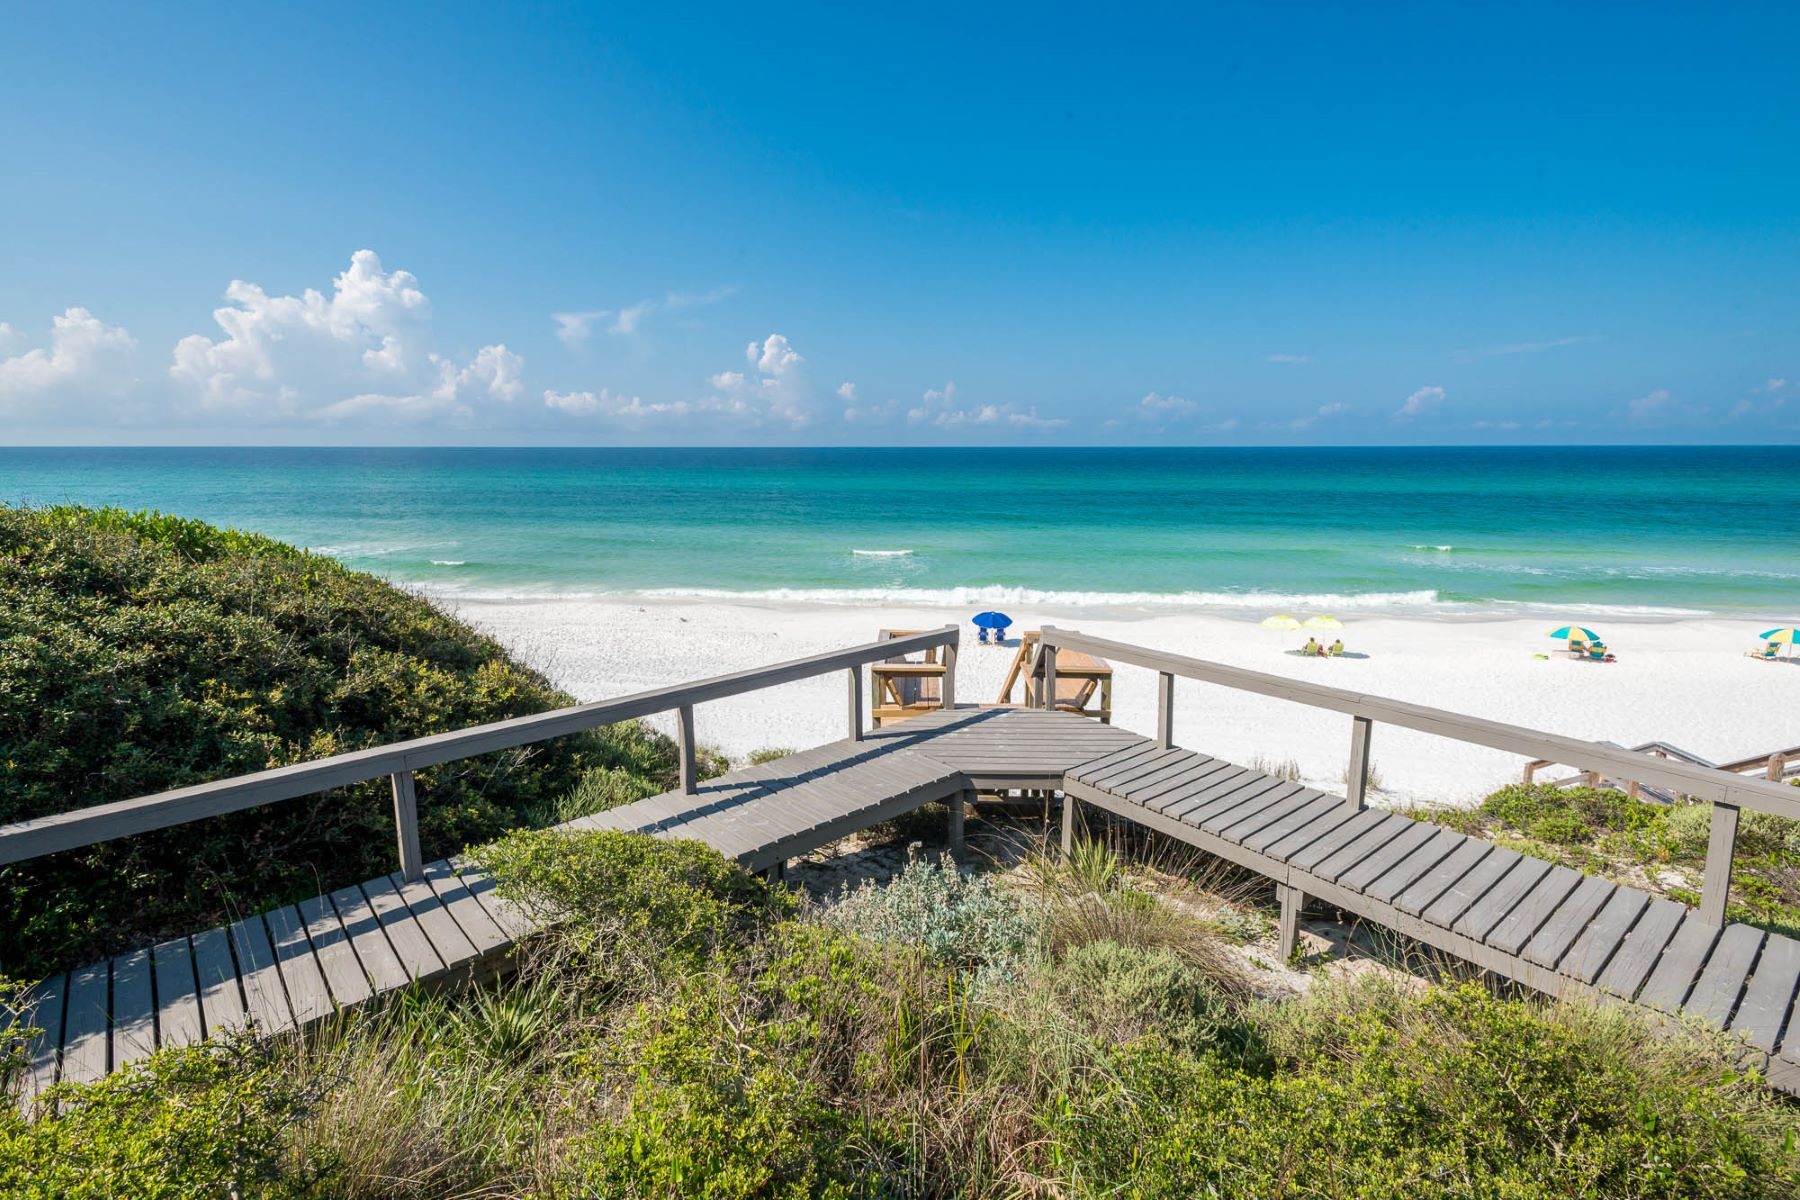 Single Family Homes for Sale at Private Gulf-front Oasis Boasting 90 Feet of Beachfront 8016 East County Highway 30A Seacrest, Florida 32461 United States